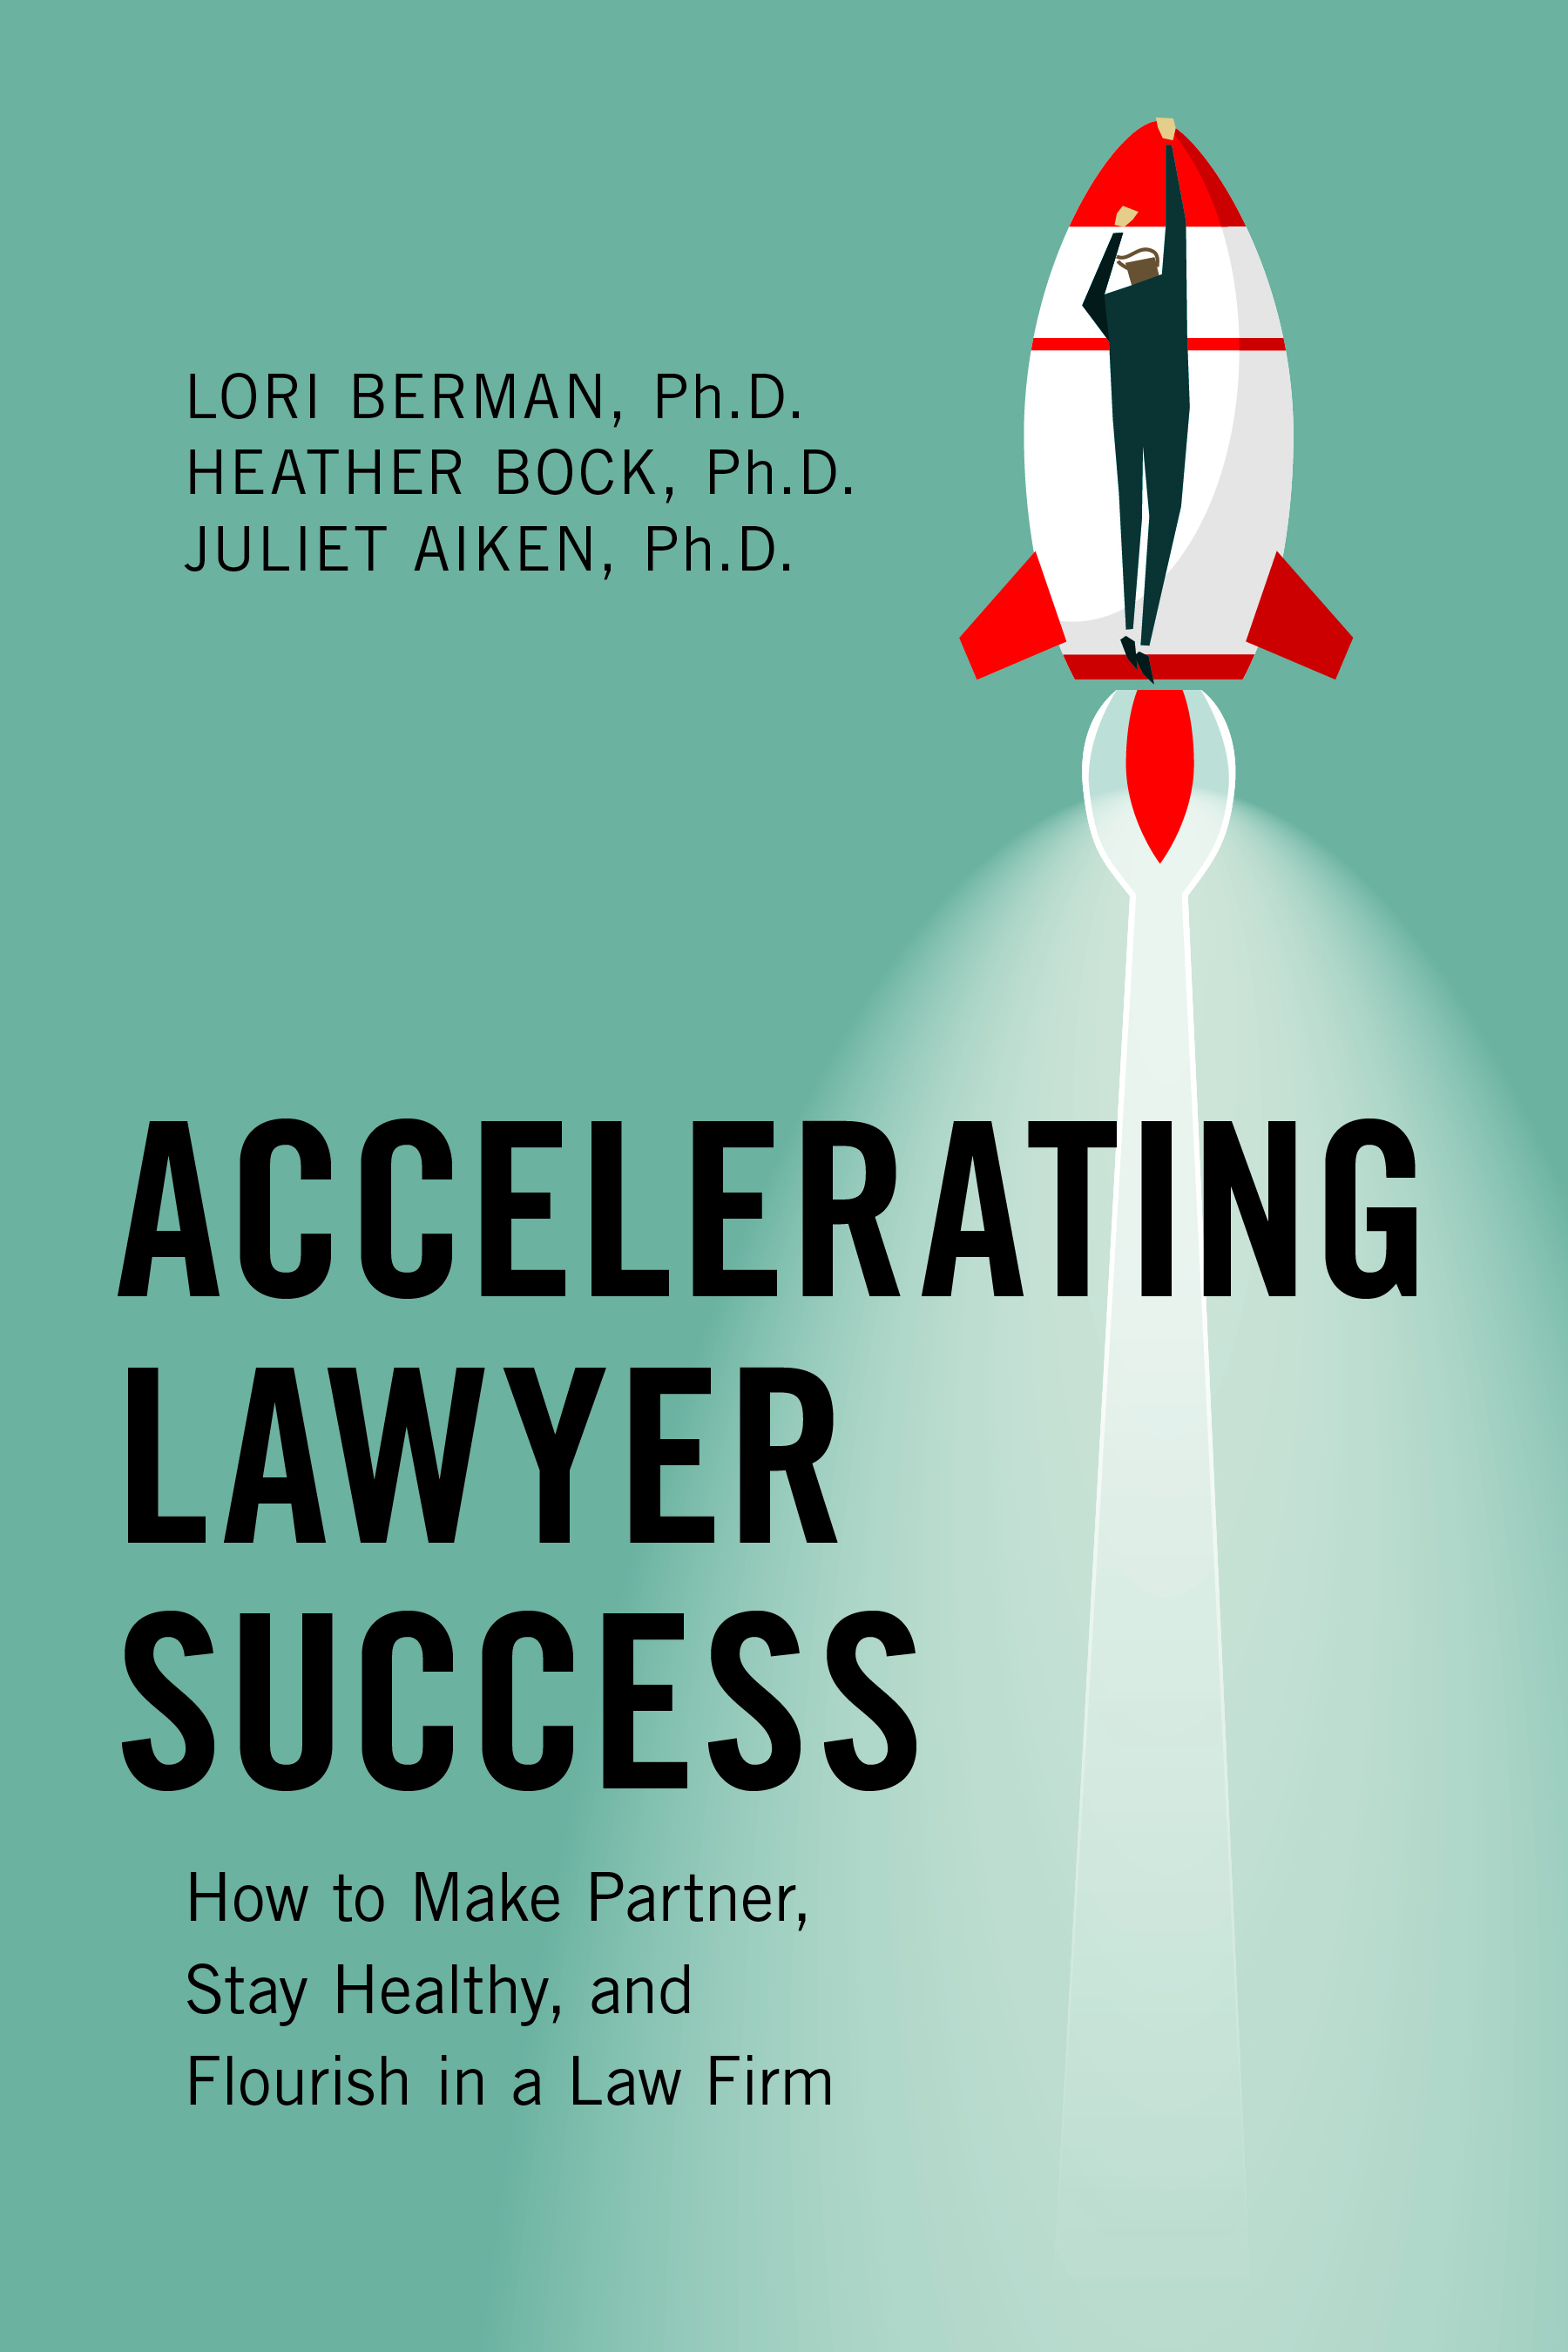 Accelerating Lawyer Success: How to Make Partner, Stay Healthy, and Flourish in a Law Firm